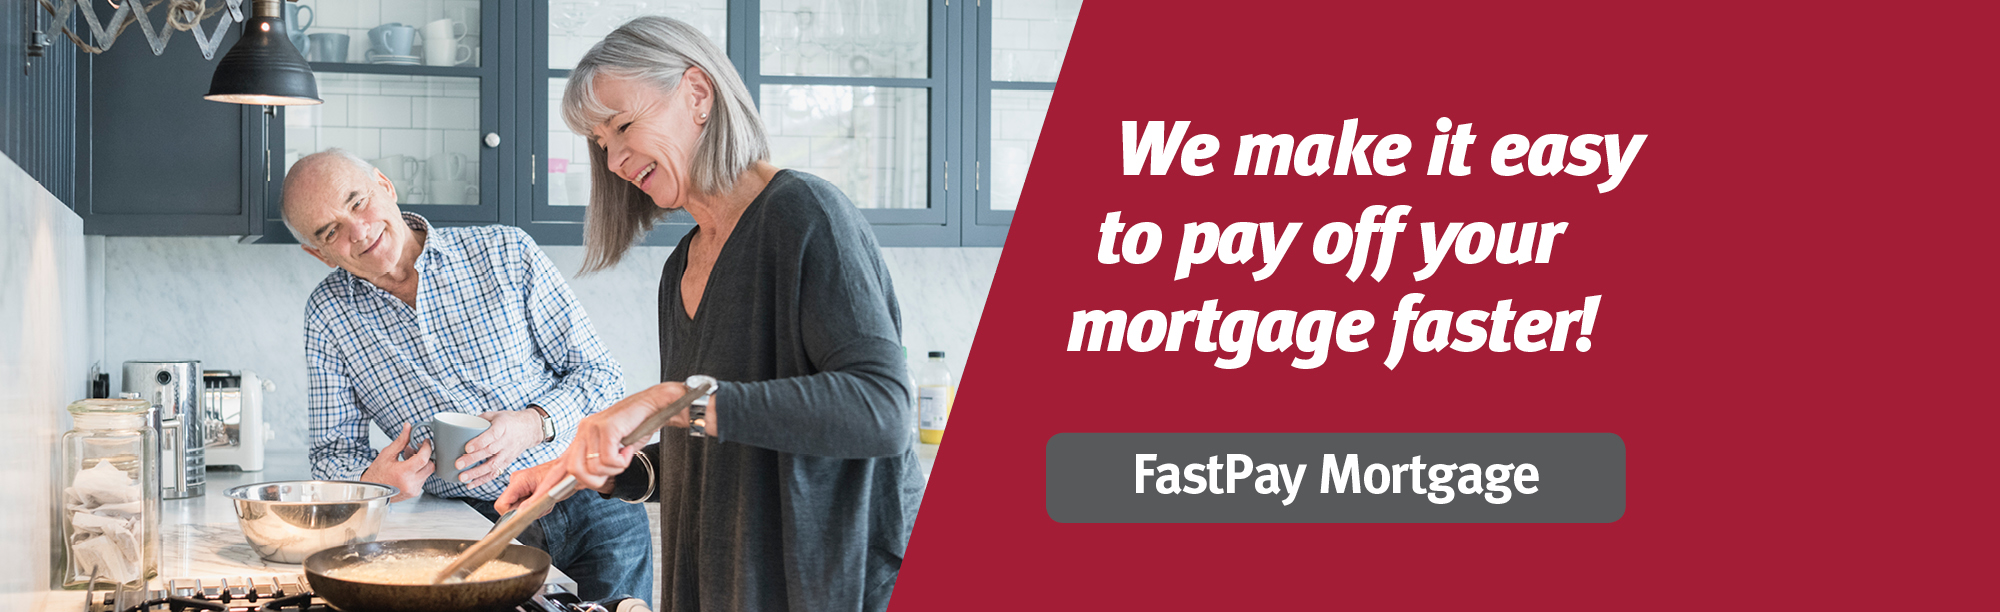 Click to learn how we make it easy to pay off your mortgage faster.